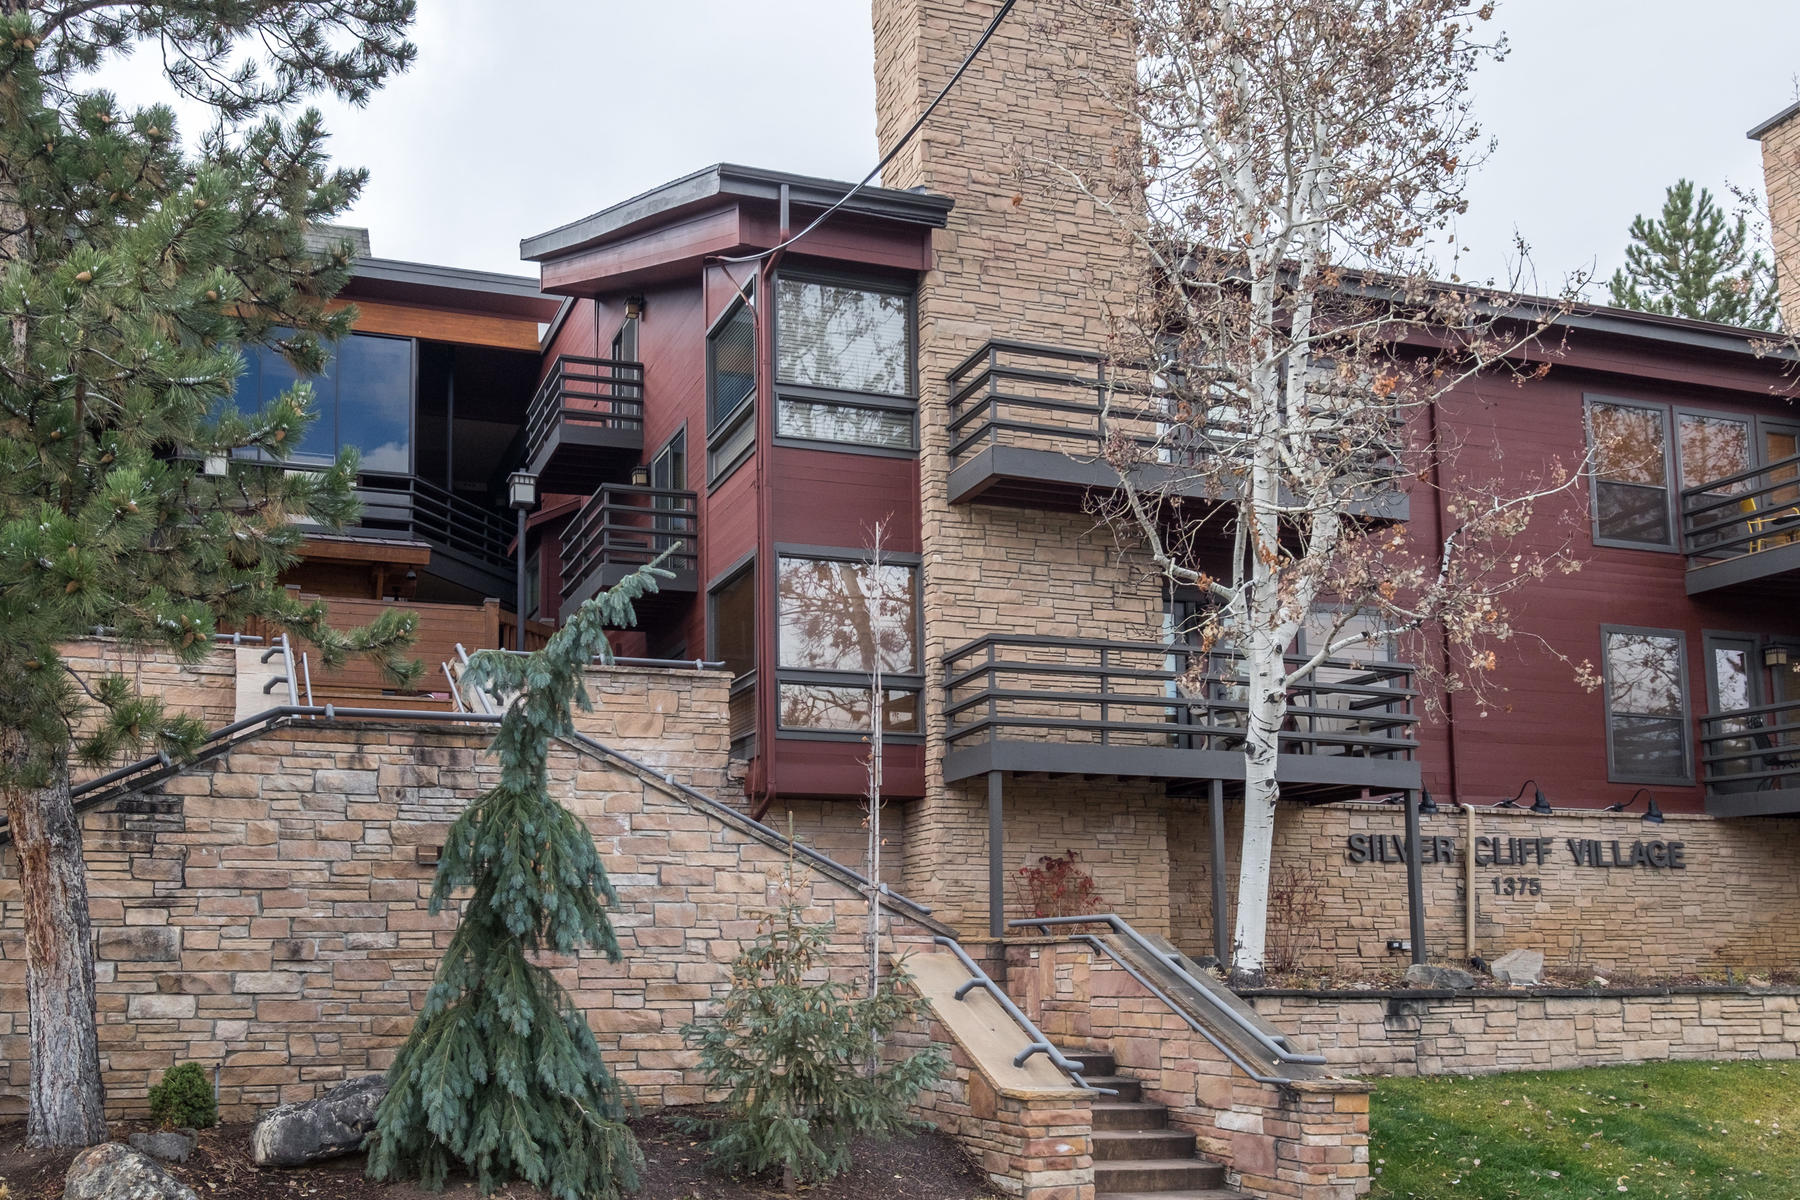 Condominium for Sale at Location, Location, Location! 1375 Woodside Ave #102 Park City, Utah 84060 United States